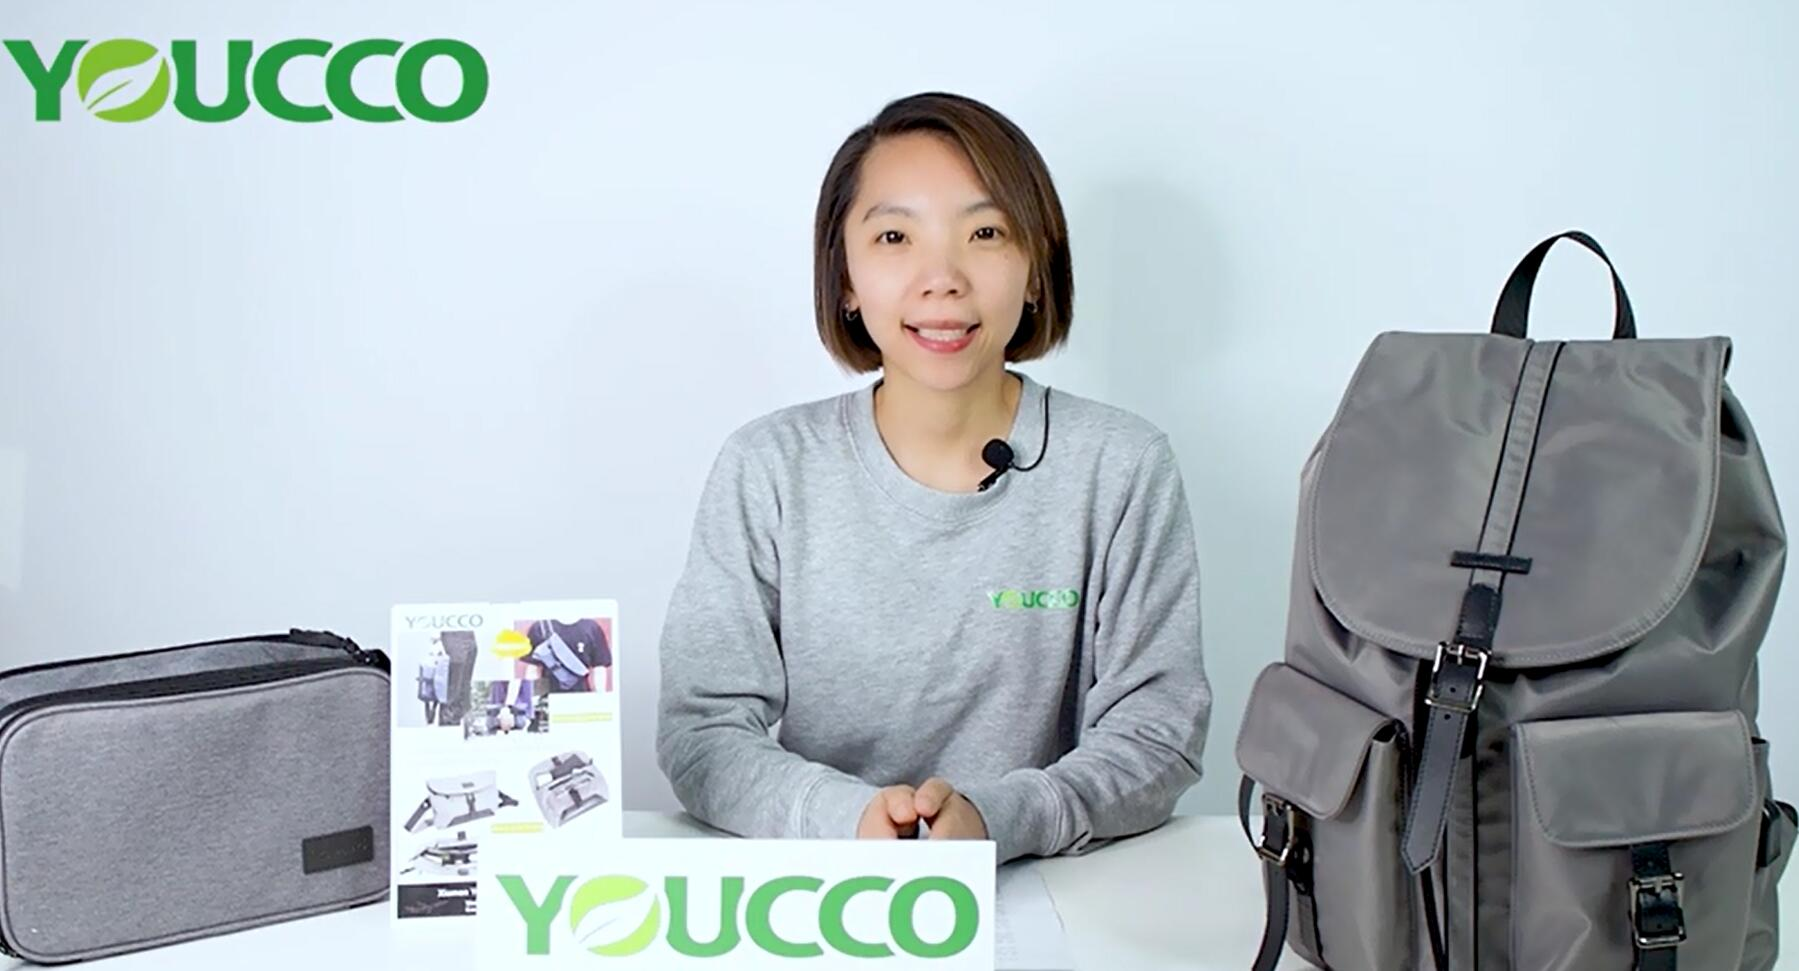 Top 5 questions about YOUCCO manufacture and production